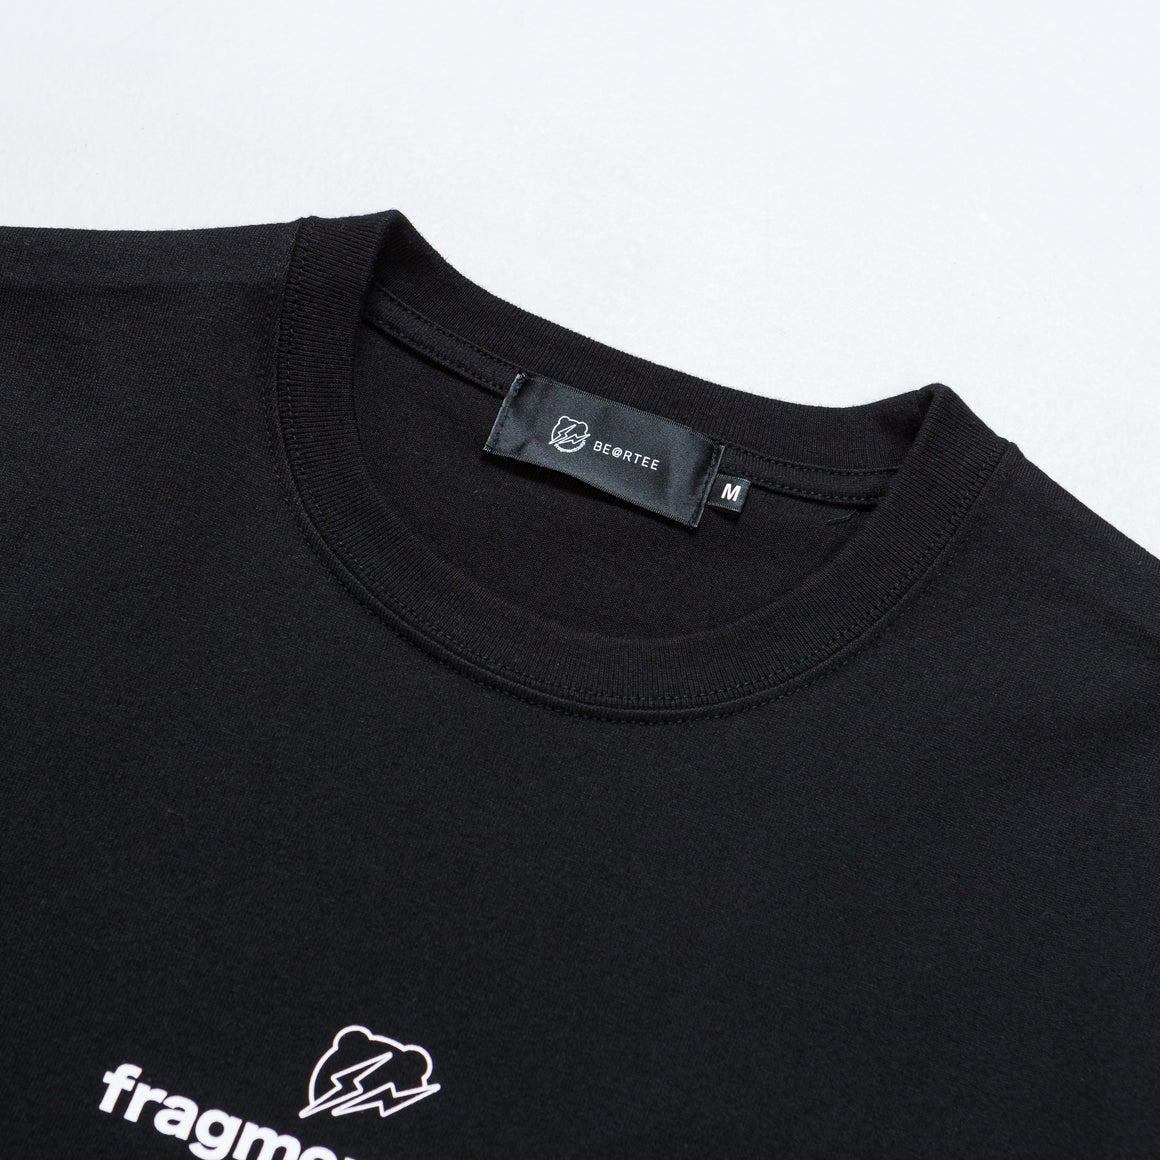 Medicom Toy - Fragment Logo Tee - Black - Up There